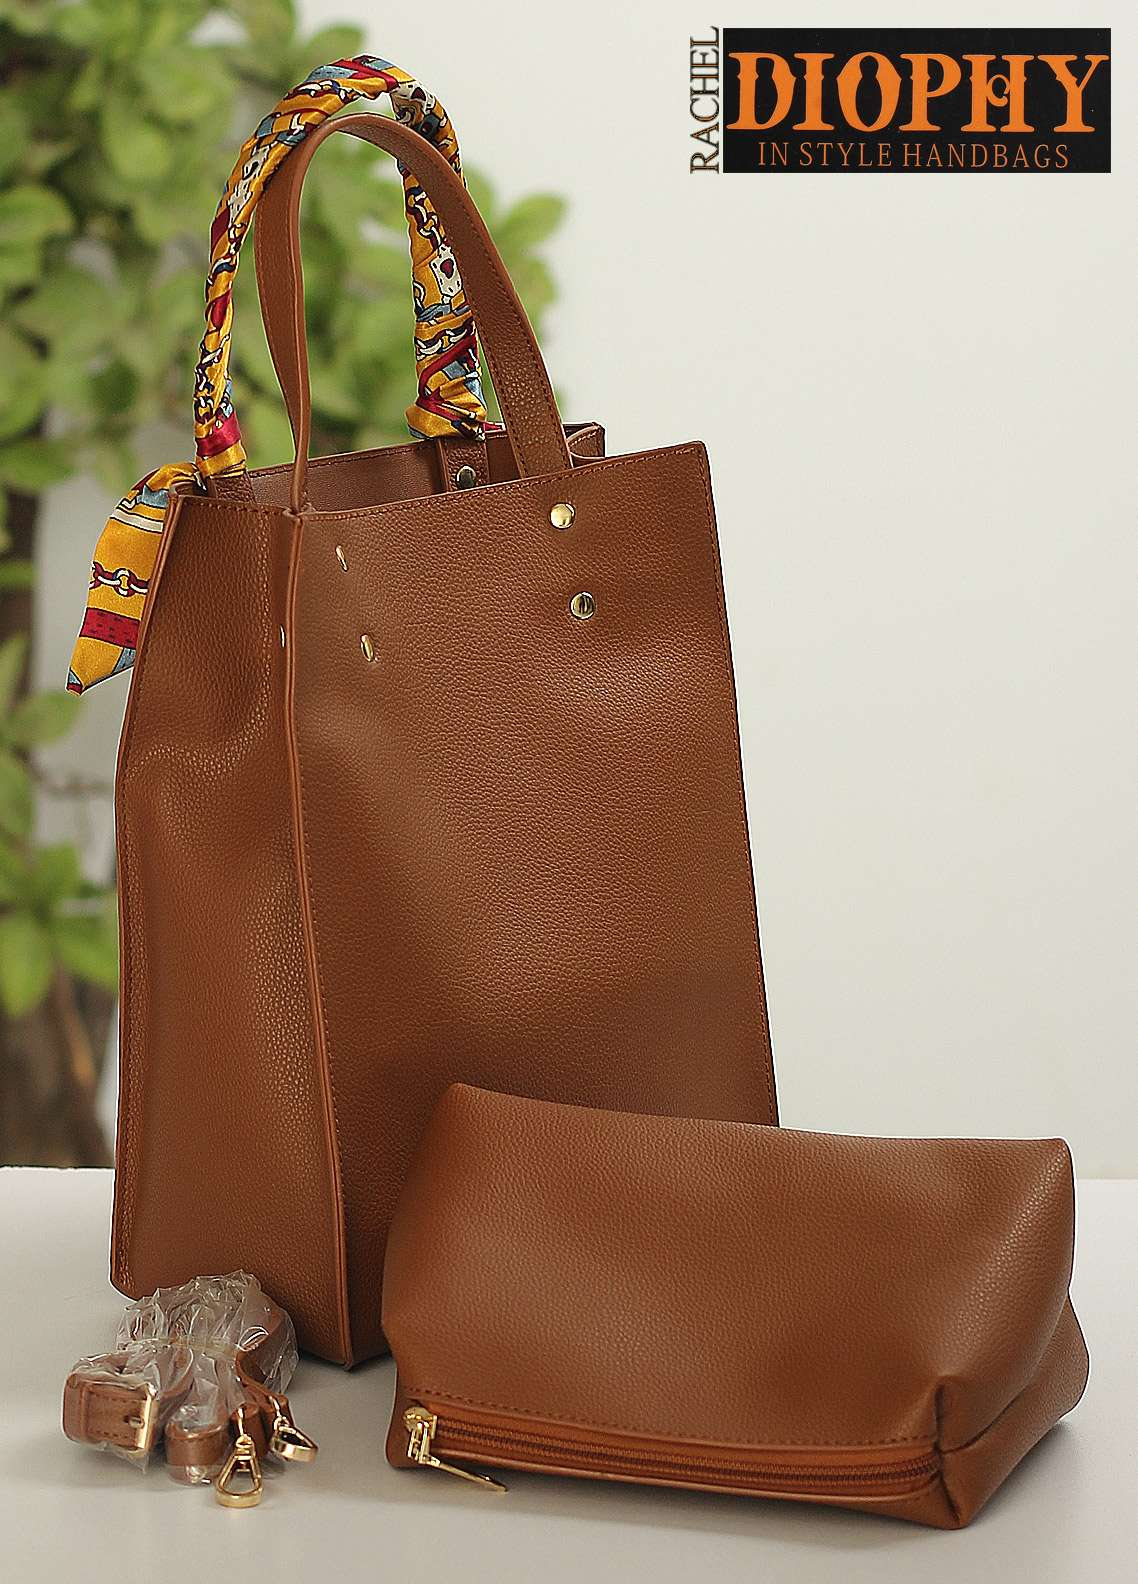 Rachel Diophy PU Leather Tote Handbags for Women - Brown with Plain Textured